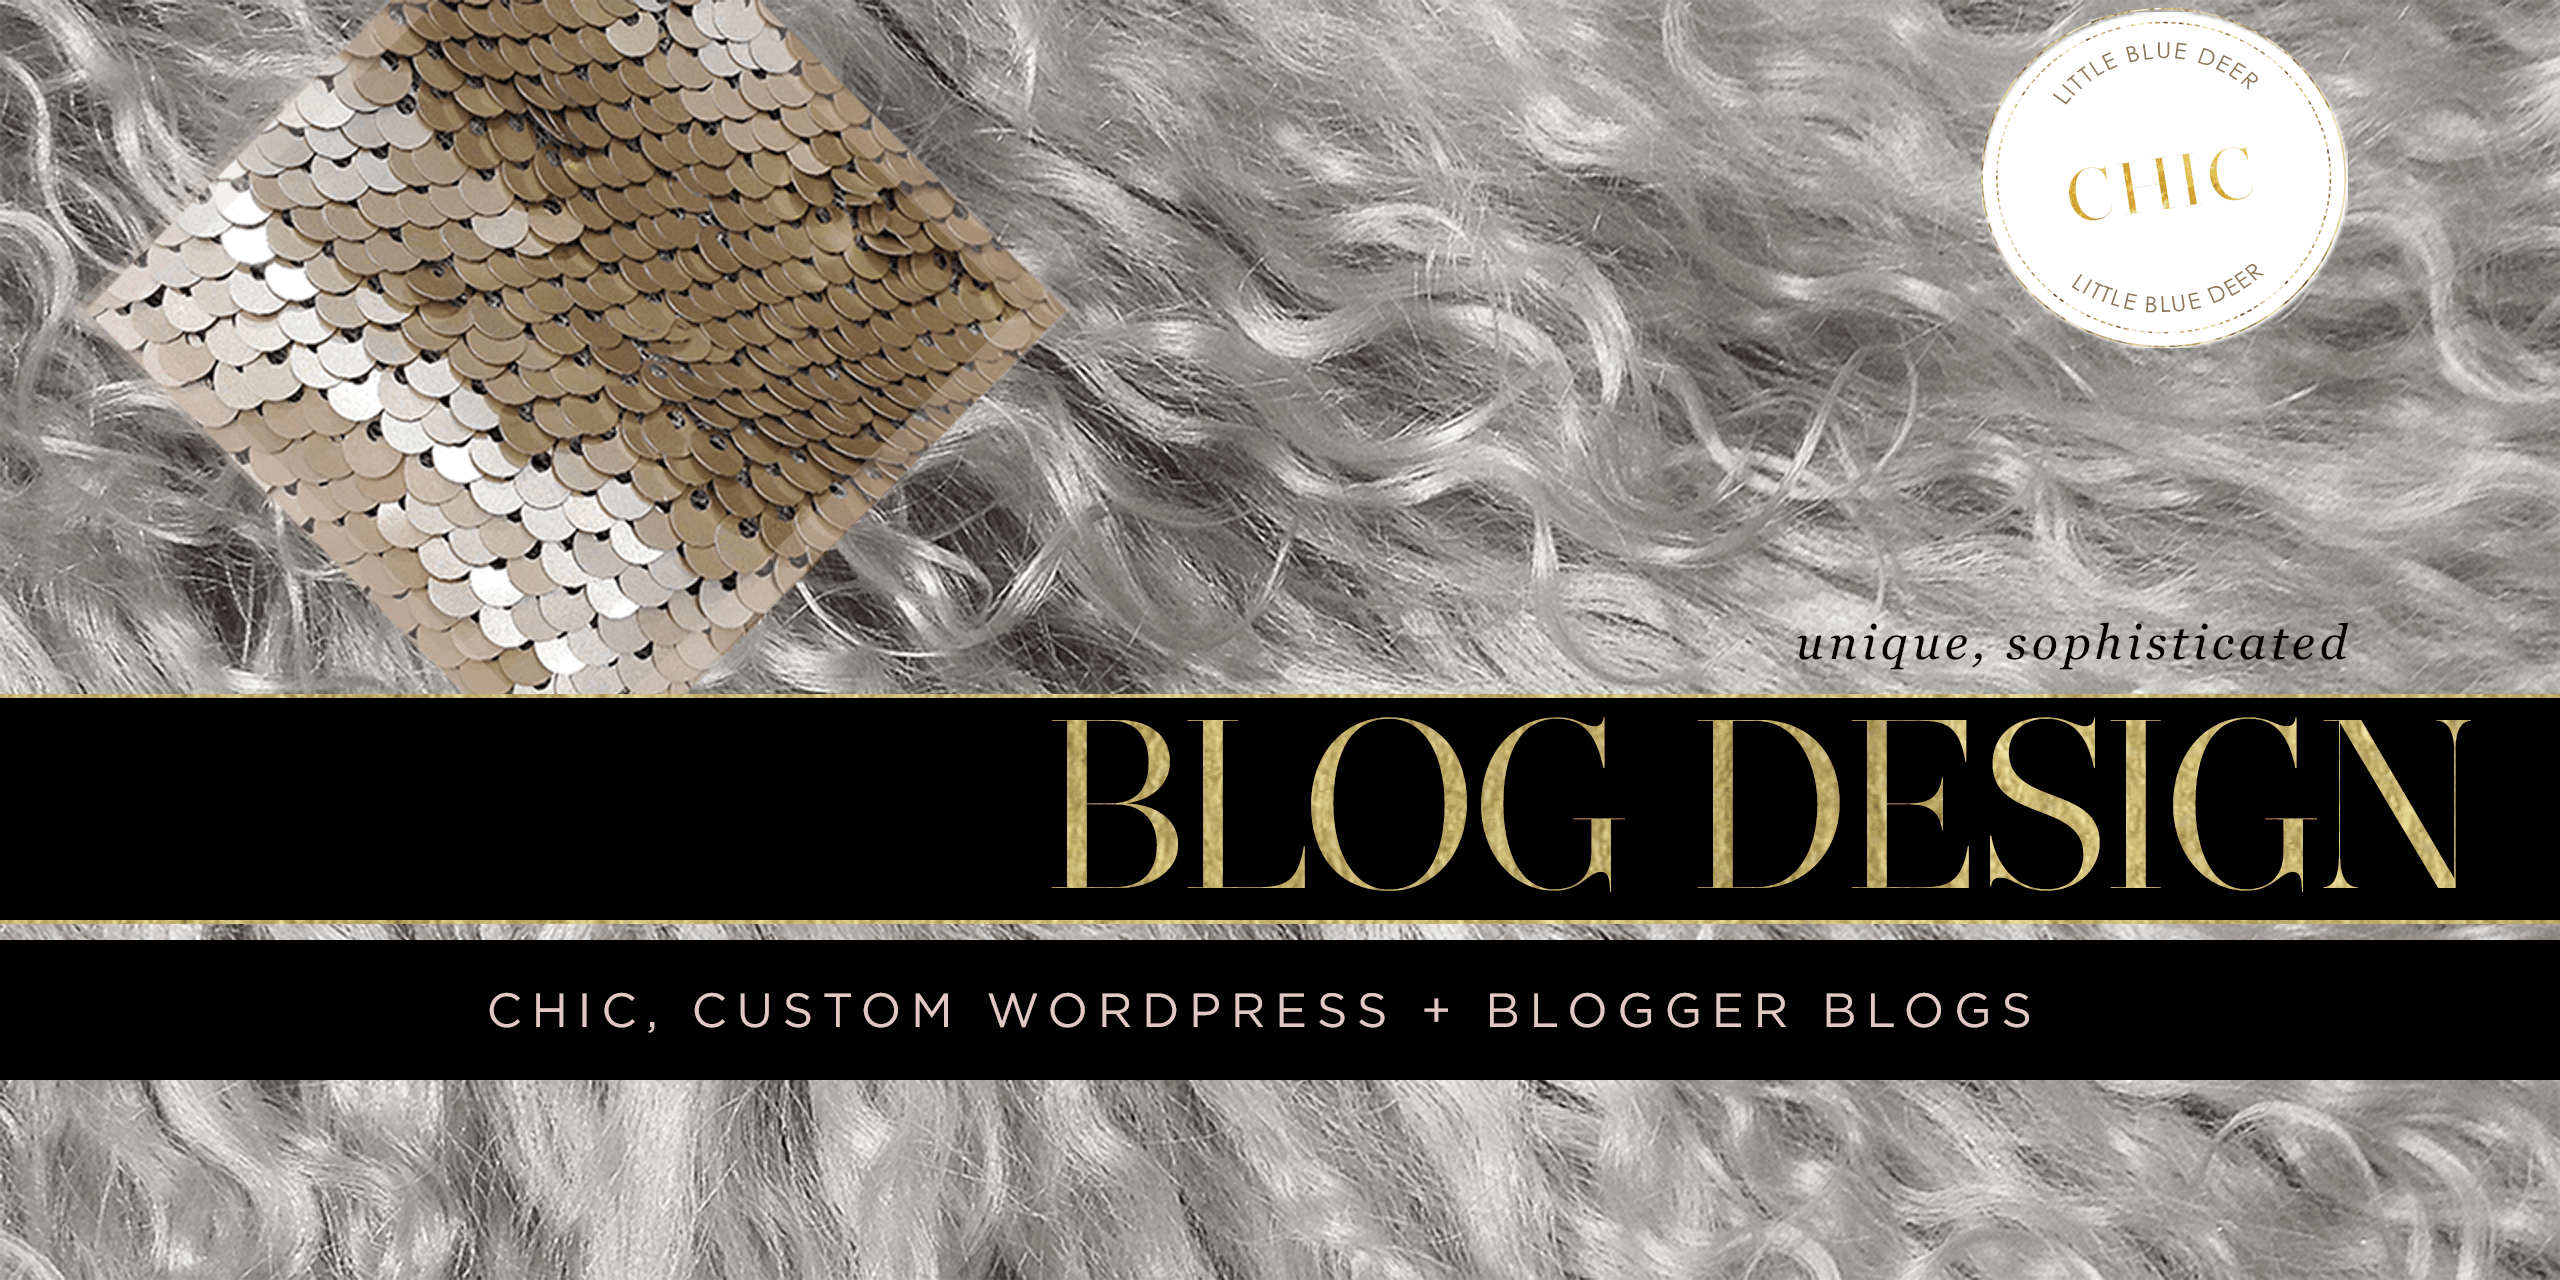 wordpress and blogger blog design